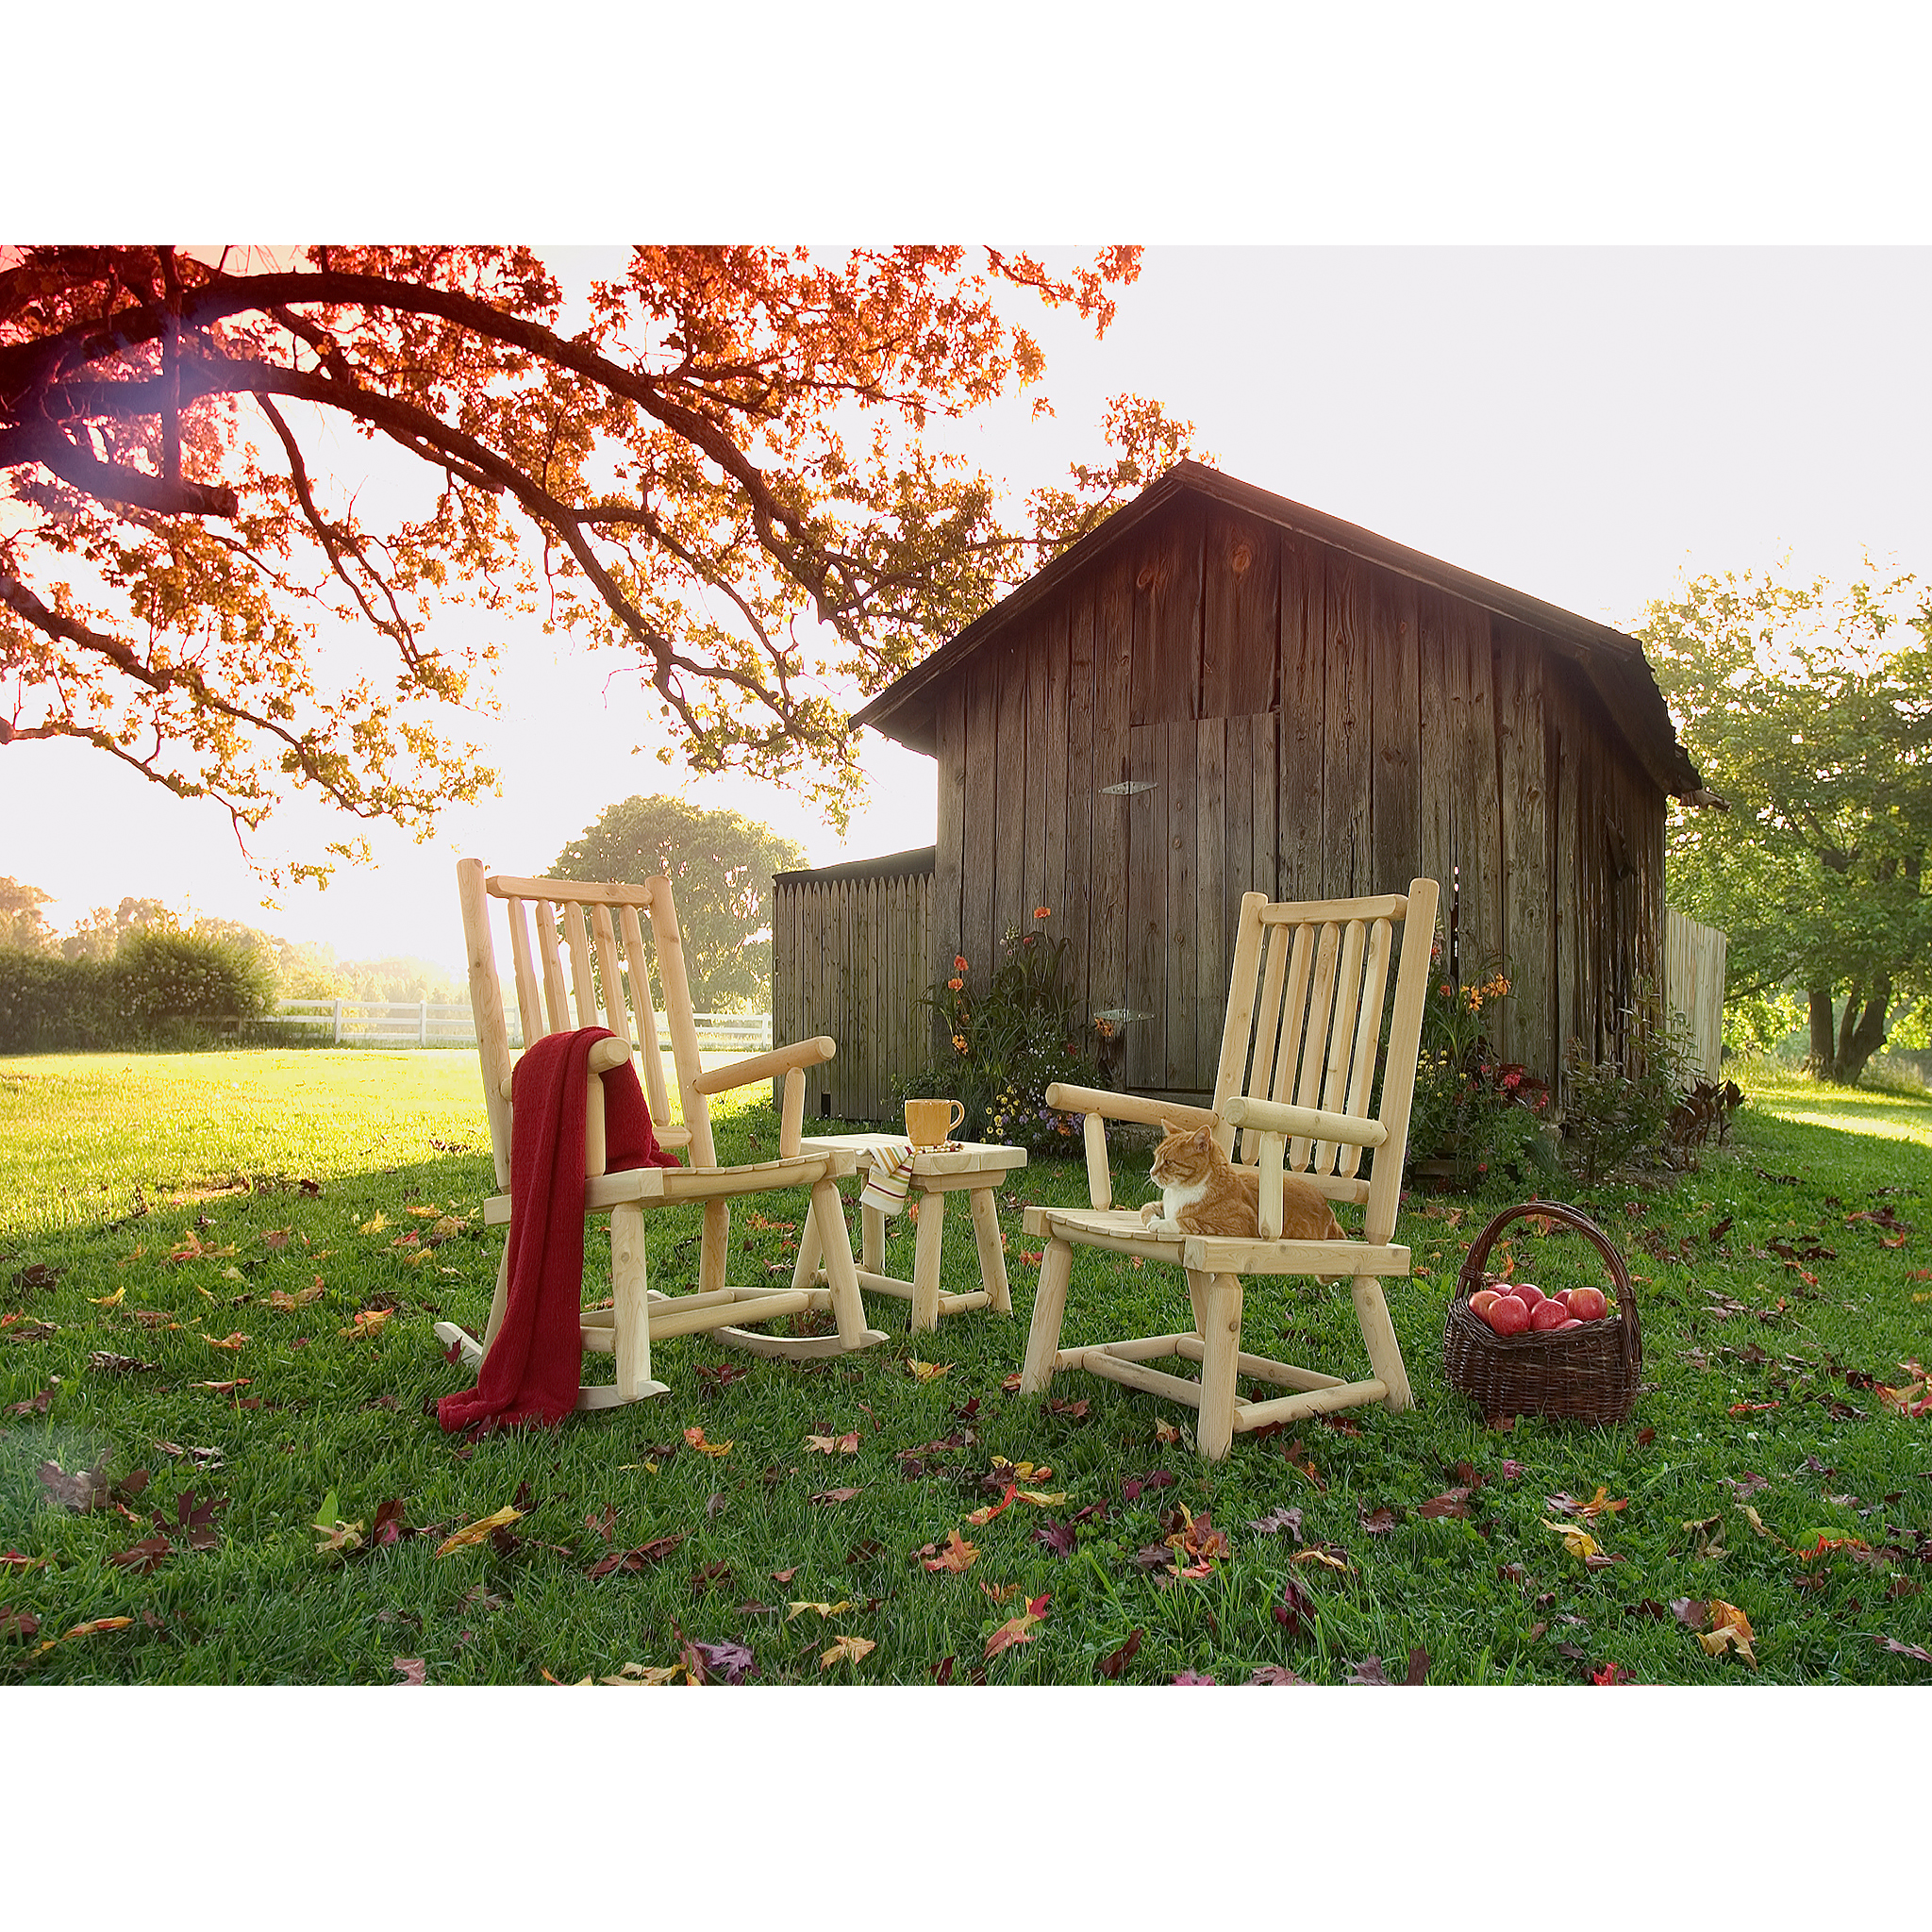 Product photograph of wooden furniture with cat in front of barn for catalog